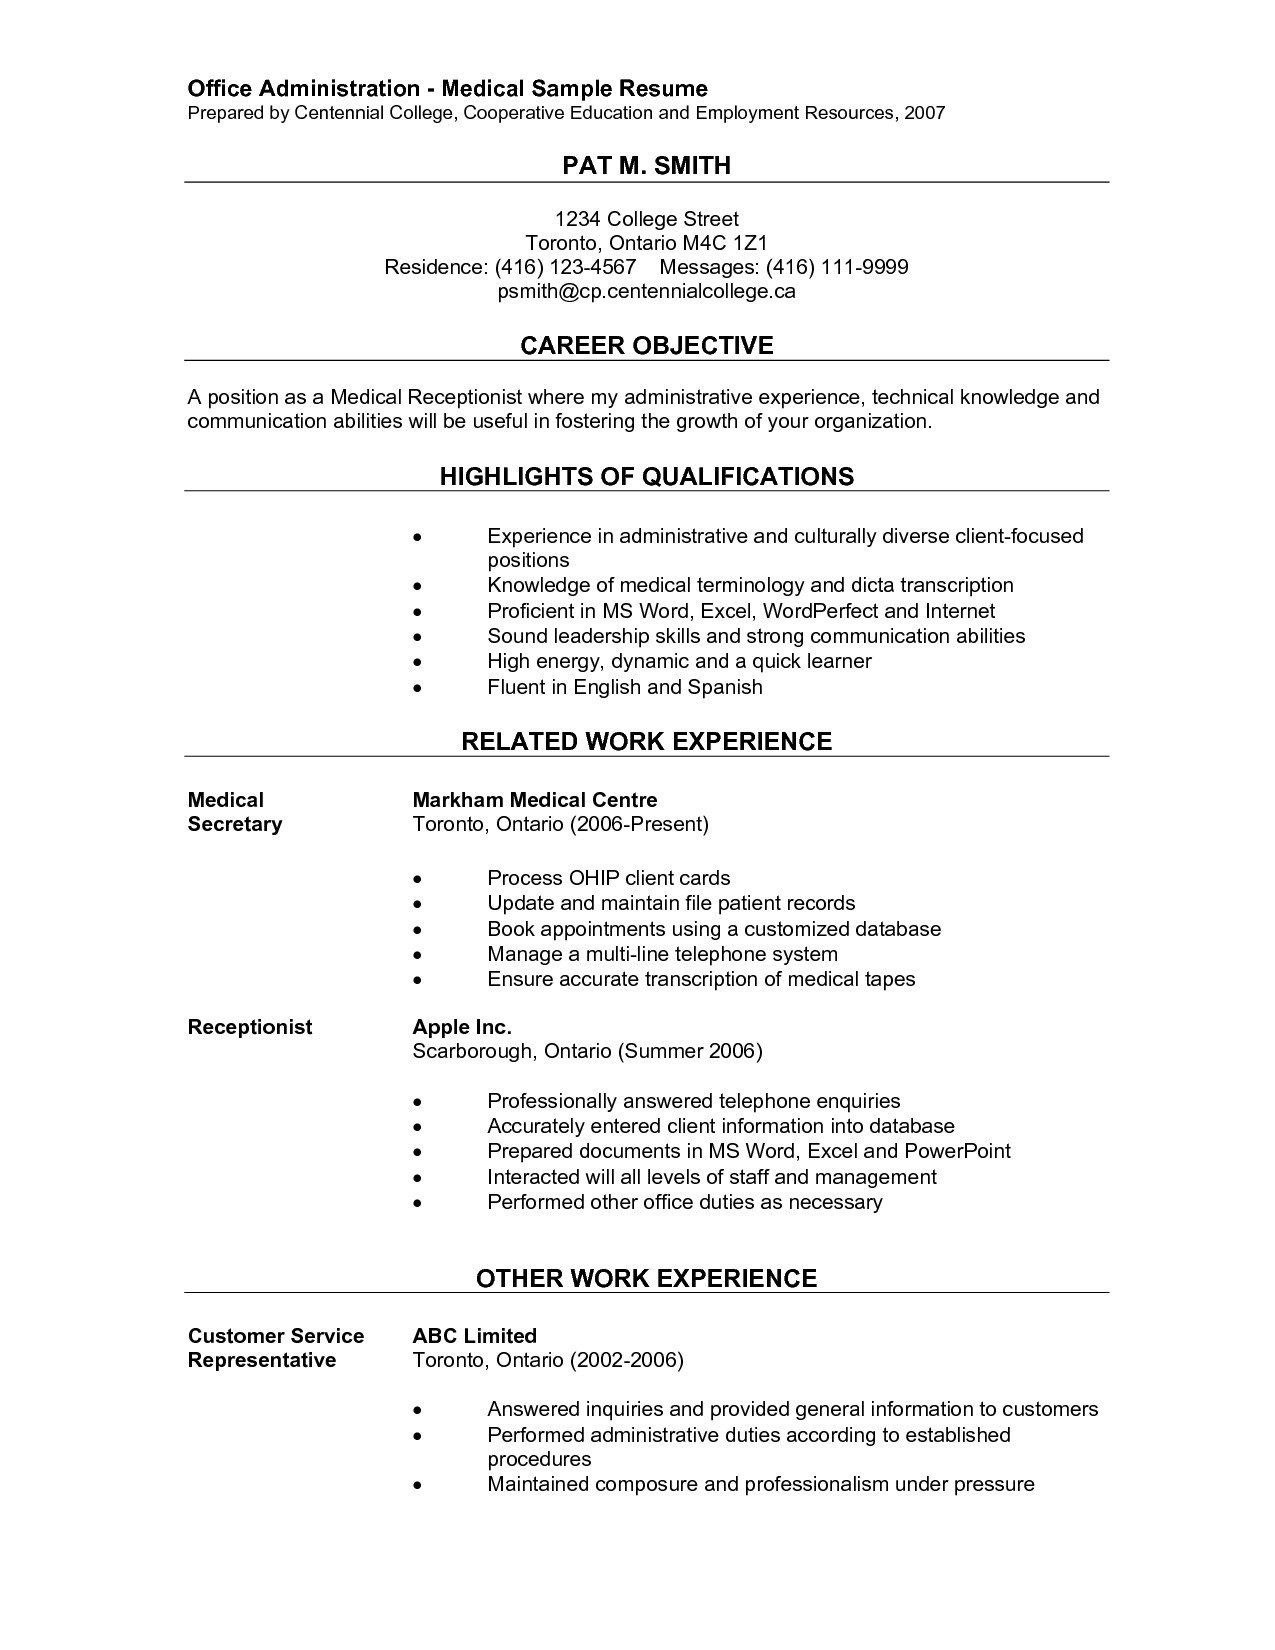 30 Airline Customer Service Resume Medical Assistant Resume